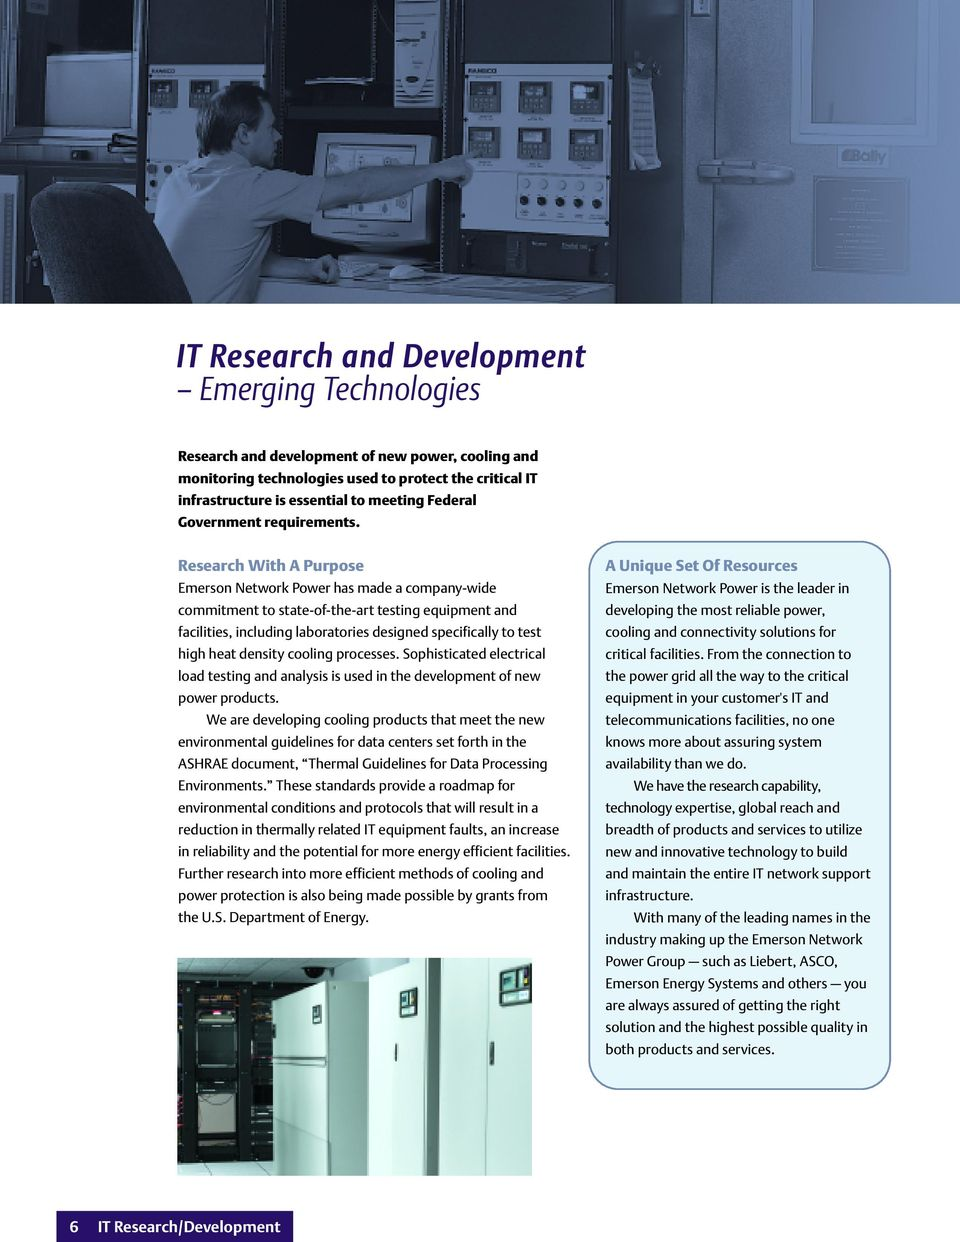 Research With A Purpose Emerson Network Power has made a company-wide commitment to state-of-the-art testing equipment and facilities, including laboratories designed specifically to test high heat